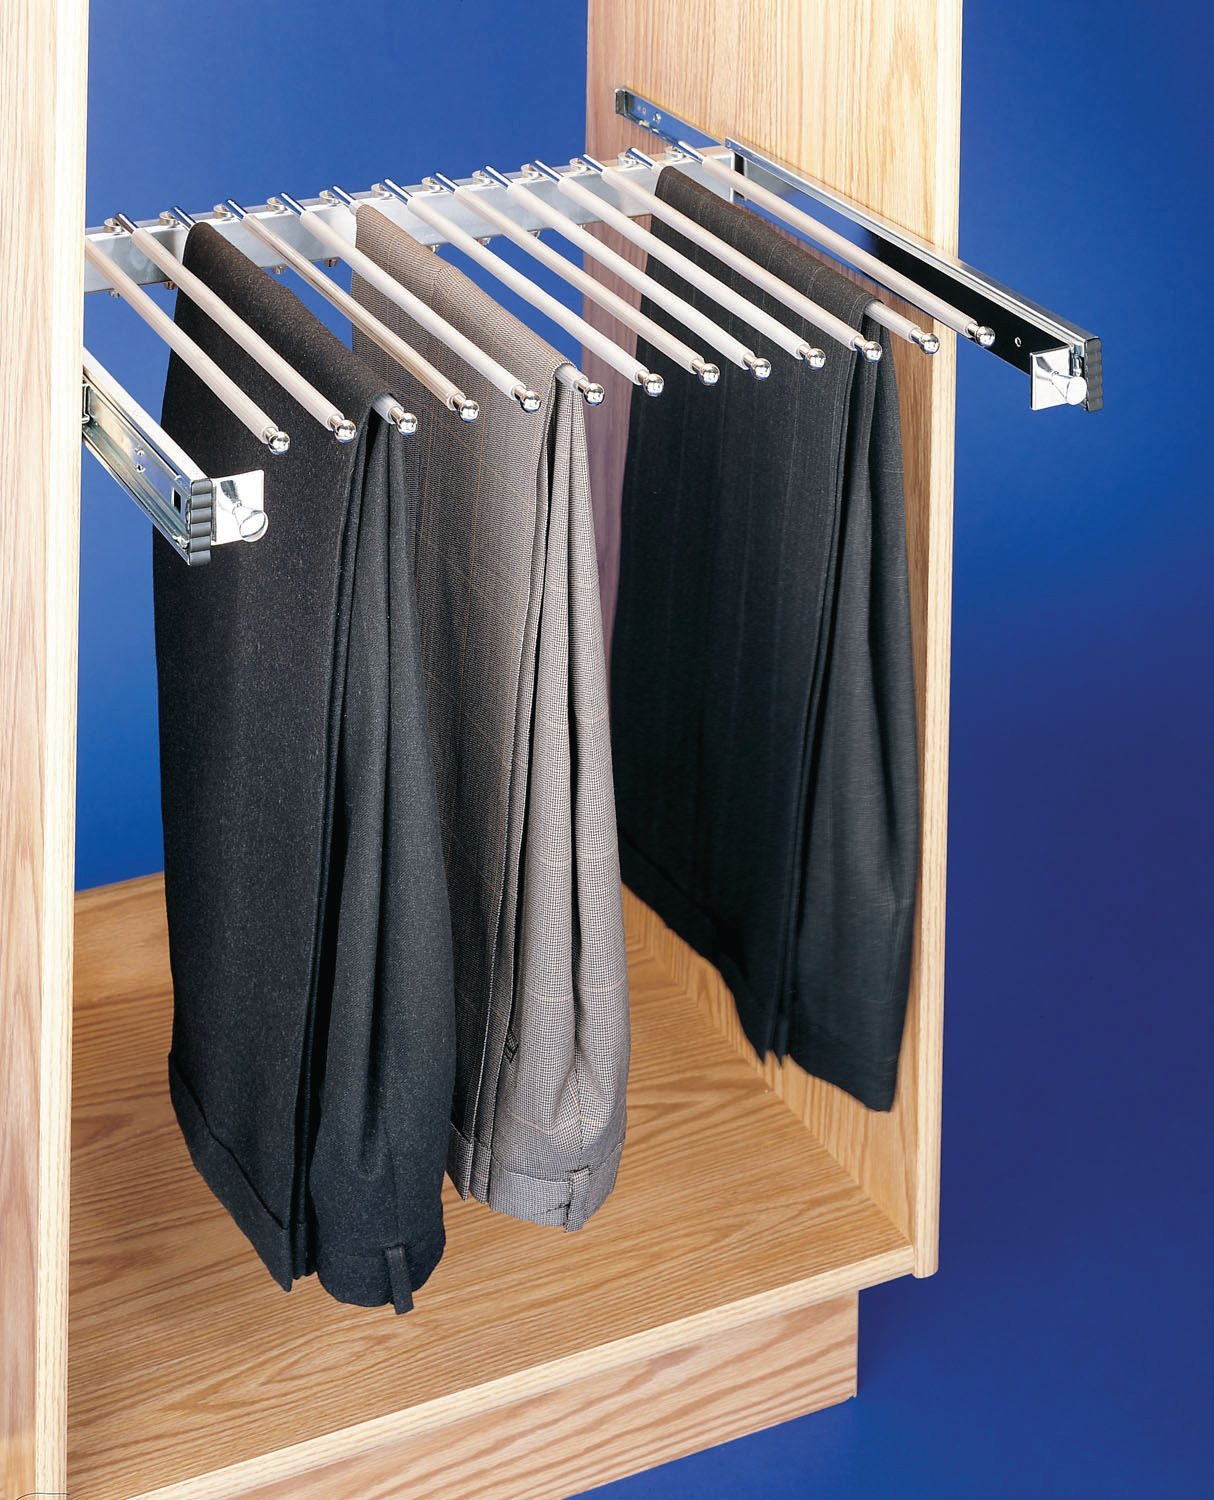 Rev-A-Shelf-18 Chrome Pull-Out Pants Rack with Full-Extension Slides PSC-1814CR